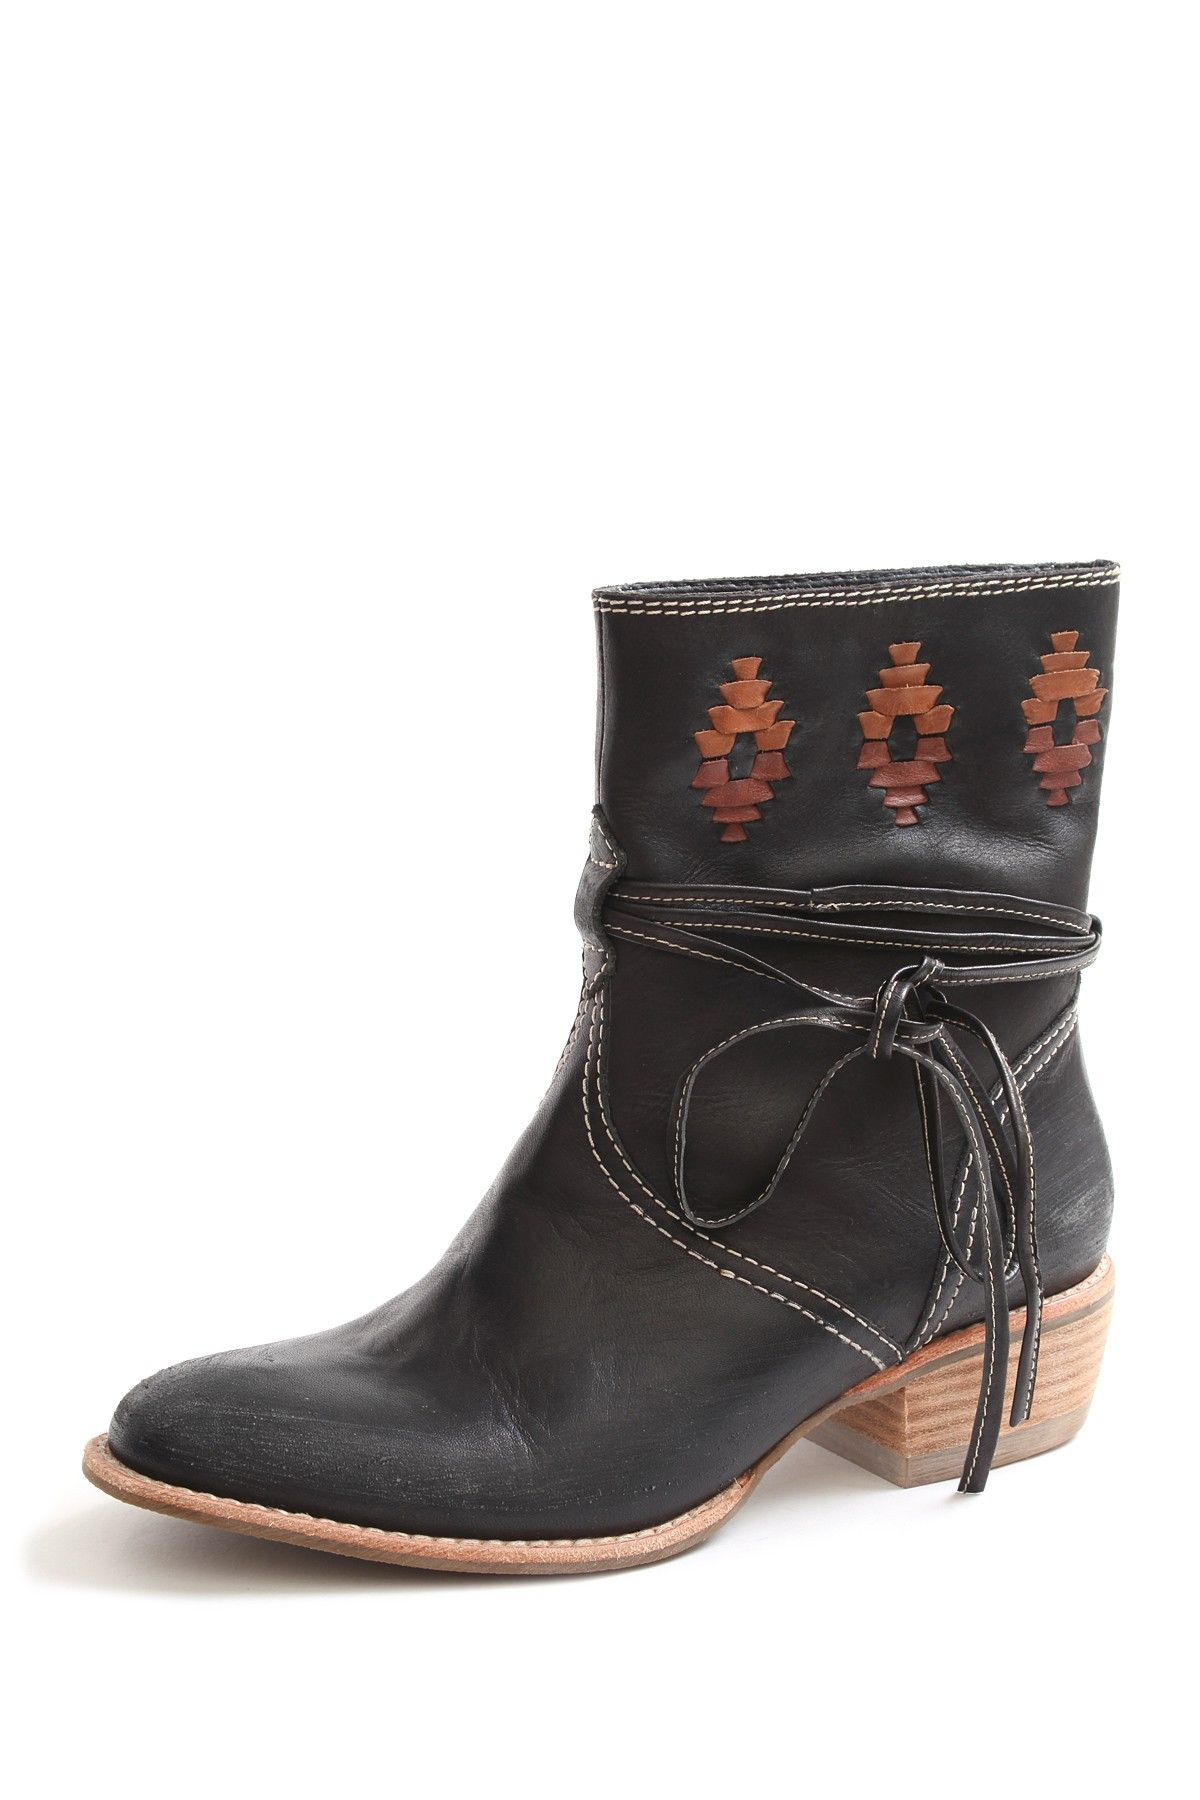 Kensie Footwear Bindi Western Boot | Imelda\'s Shoe Closet ...